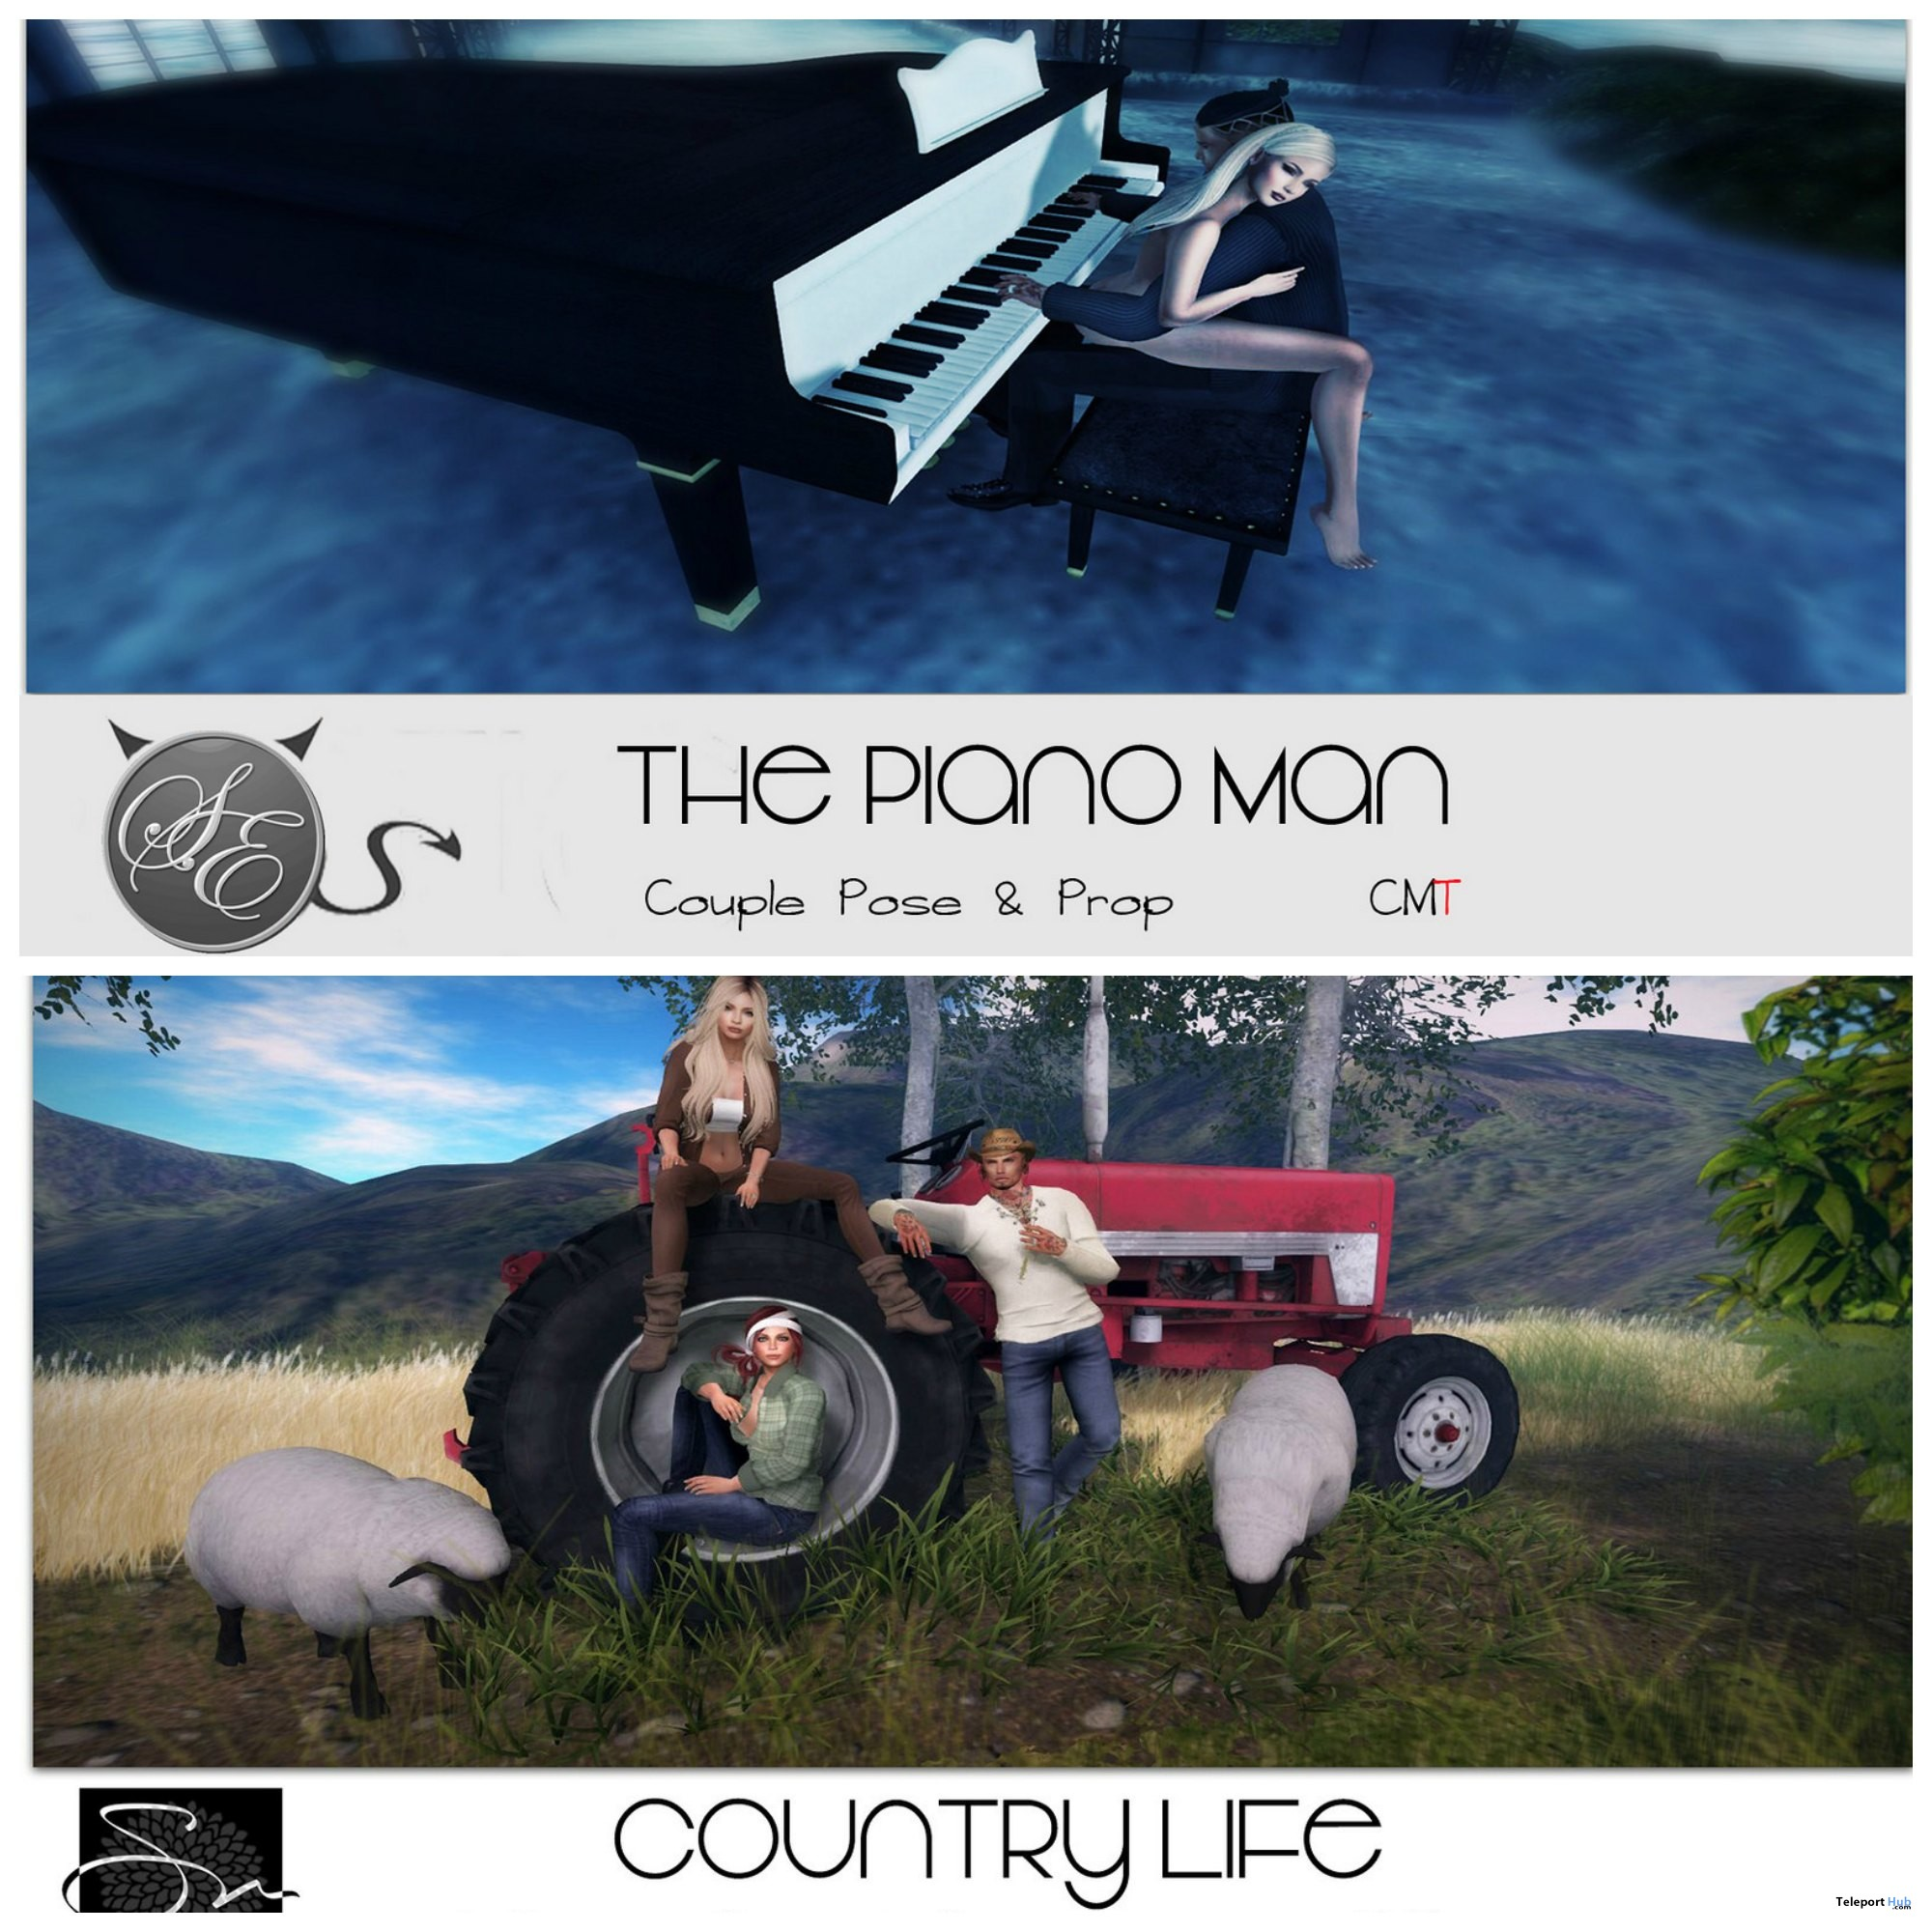 Country Life & Piano Man Poses Group Gift by Something New - Teleport Hub - teleporthub.com